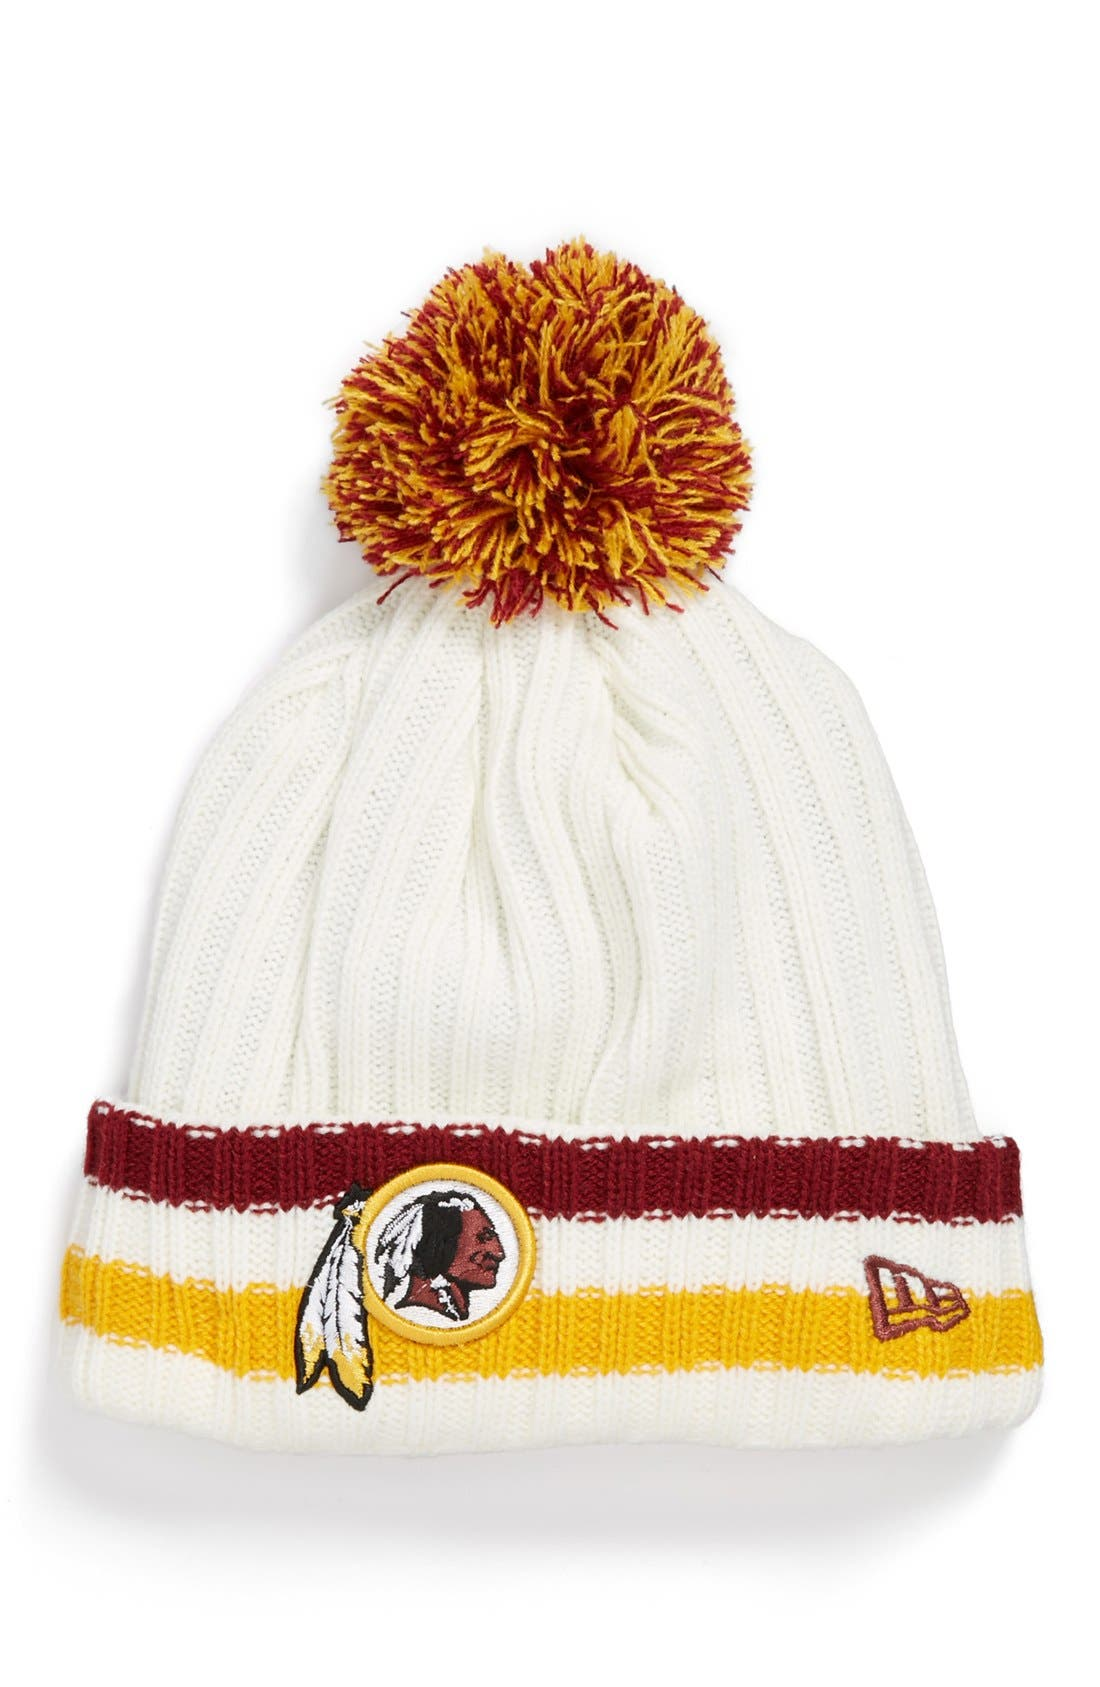 Main Image - New Era Cap 'Yesteryear - Washington Redskins' Knit Cap